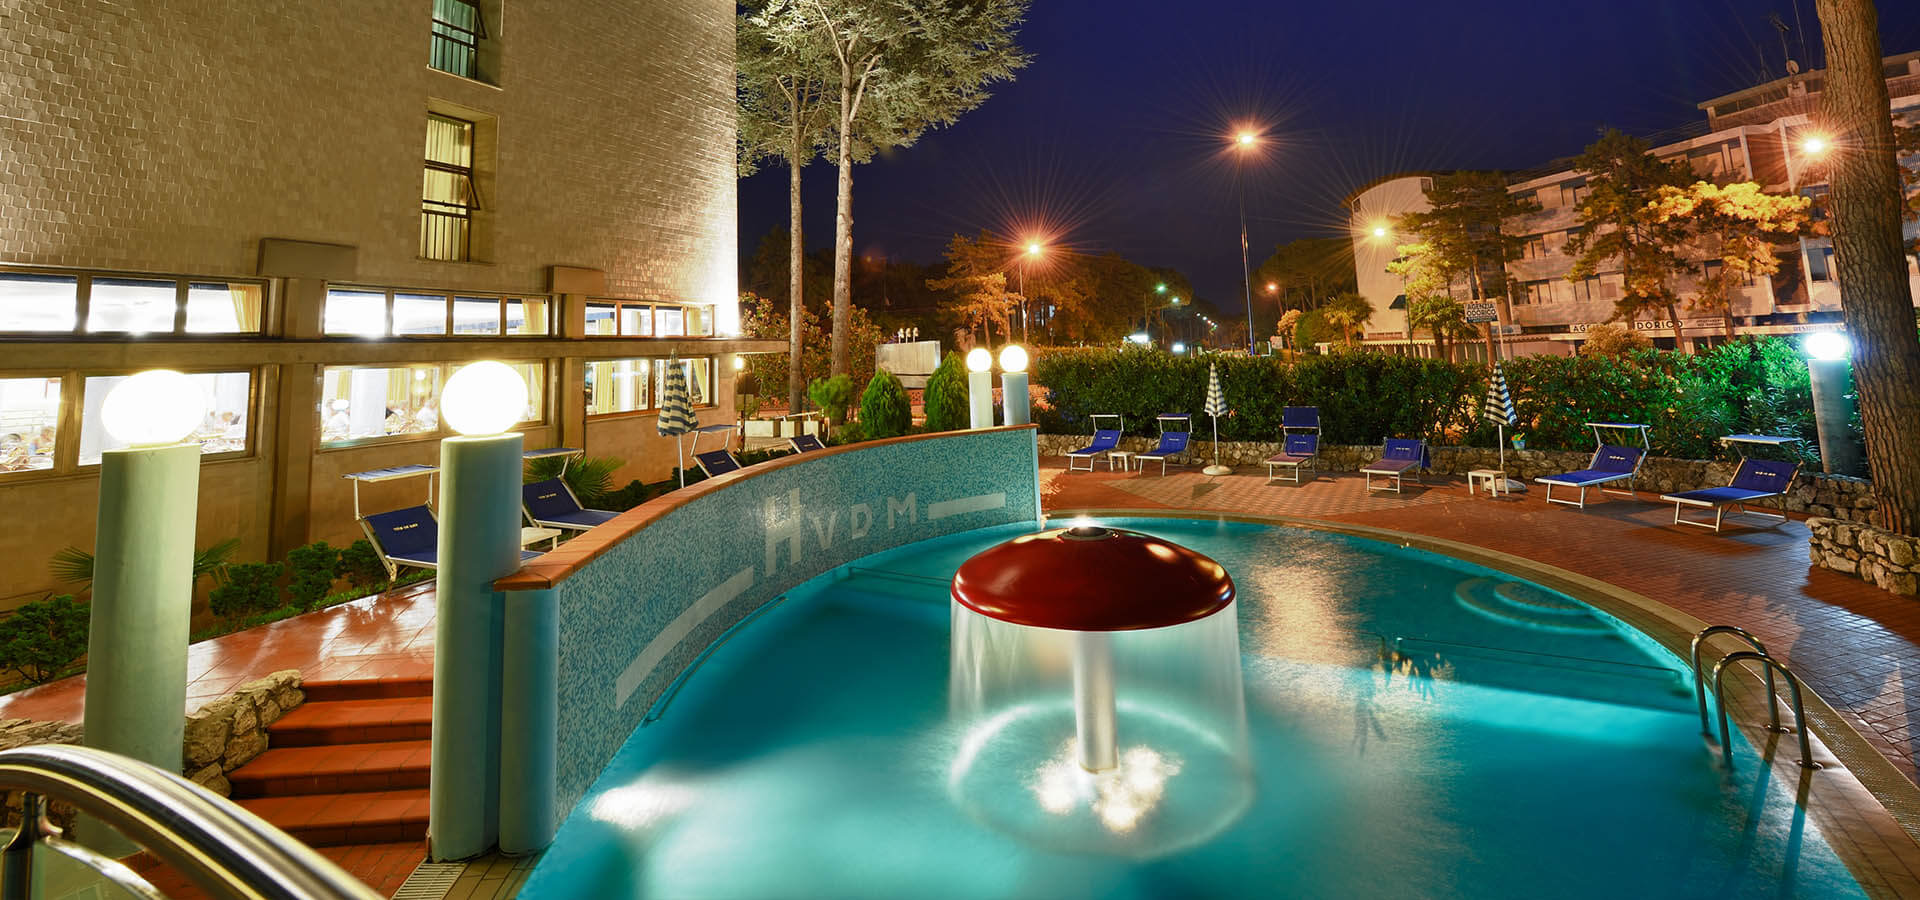 hotel with swimming pool by night